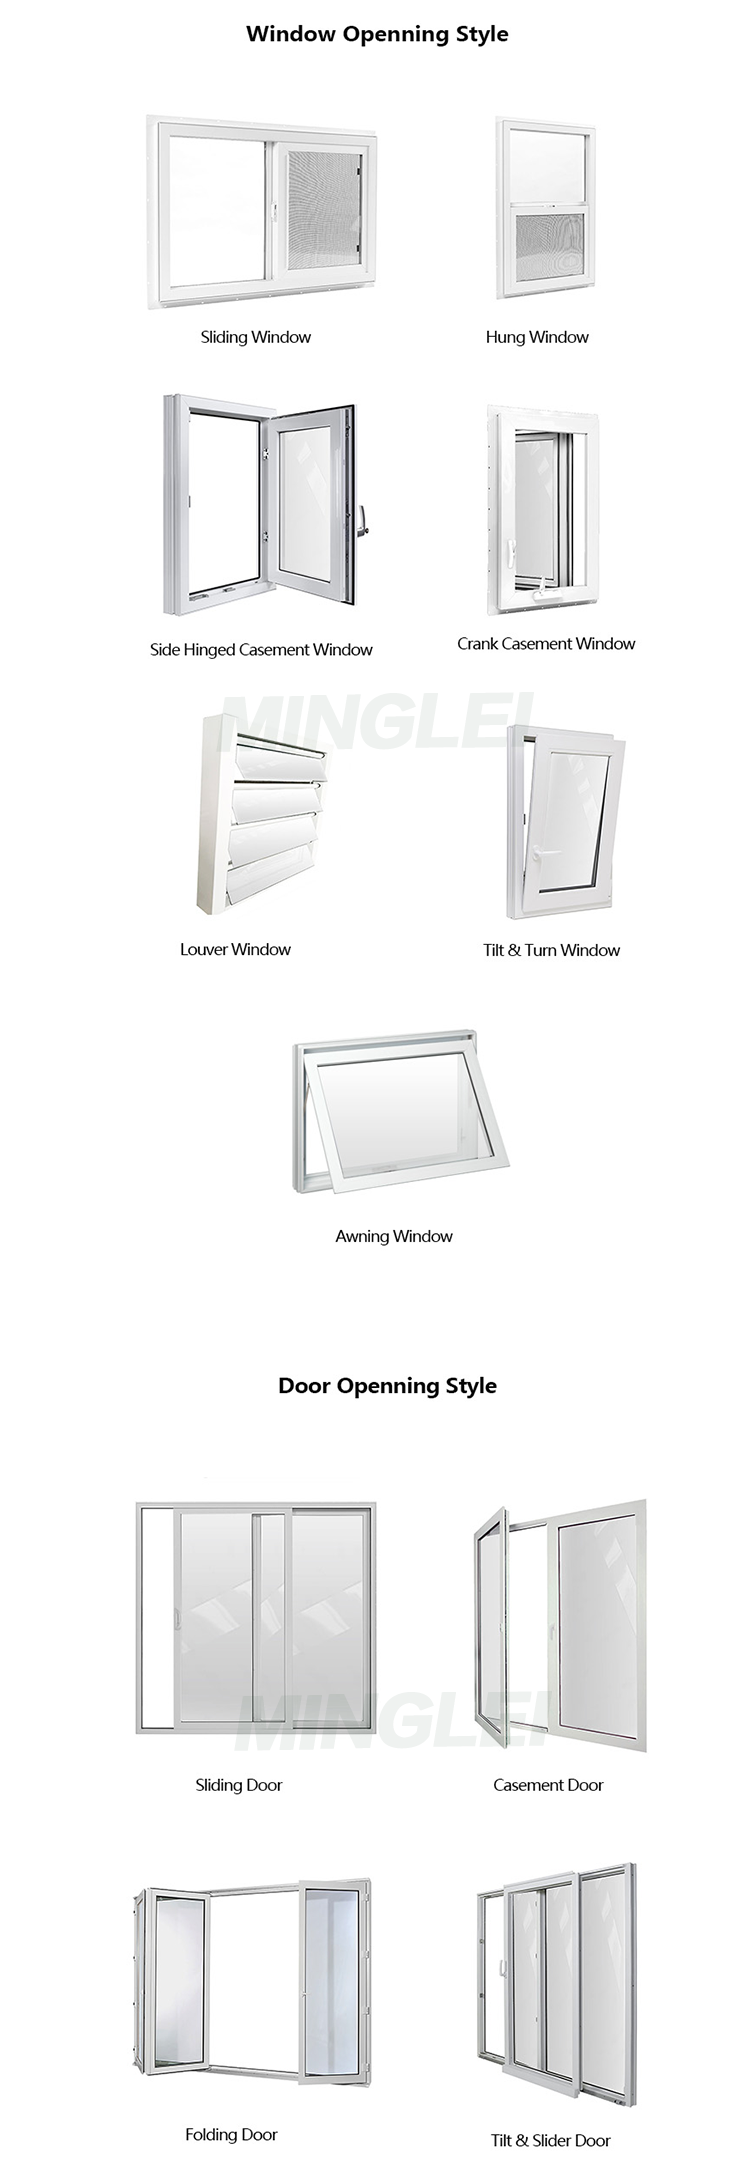 customized vinyl 30 x 30 30 x 48 casement window 30 x 60 casement window